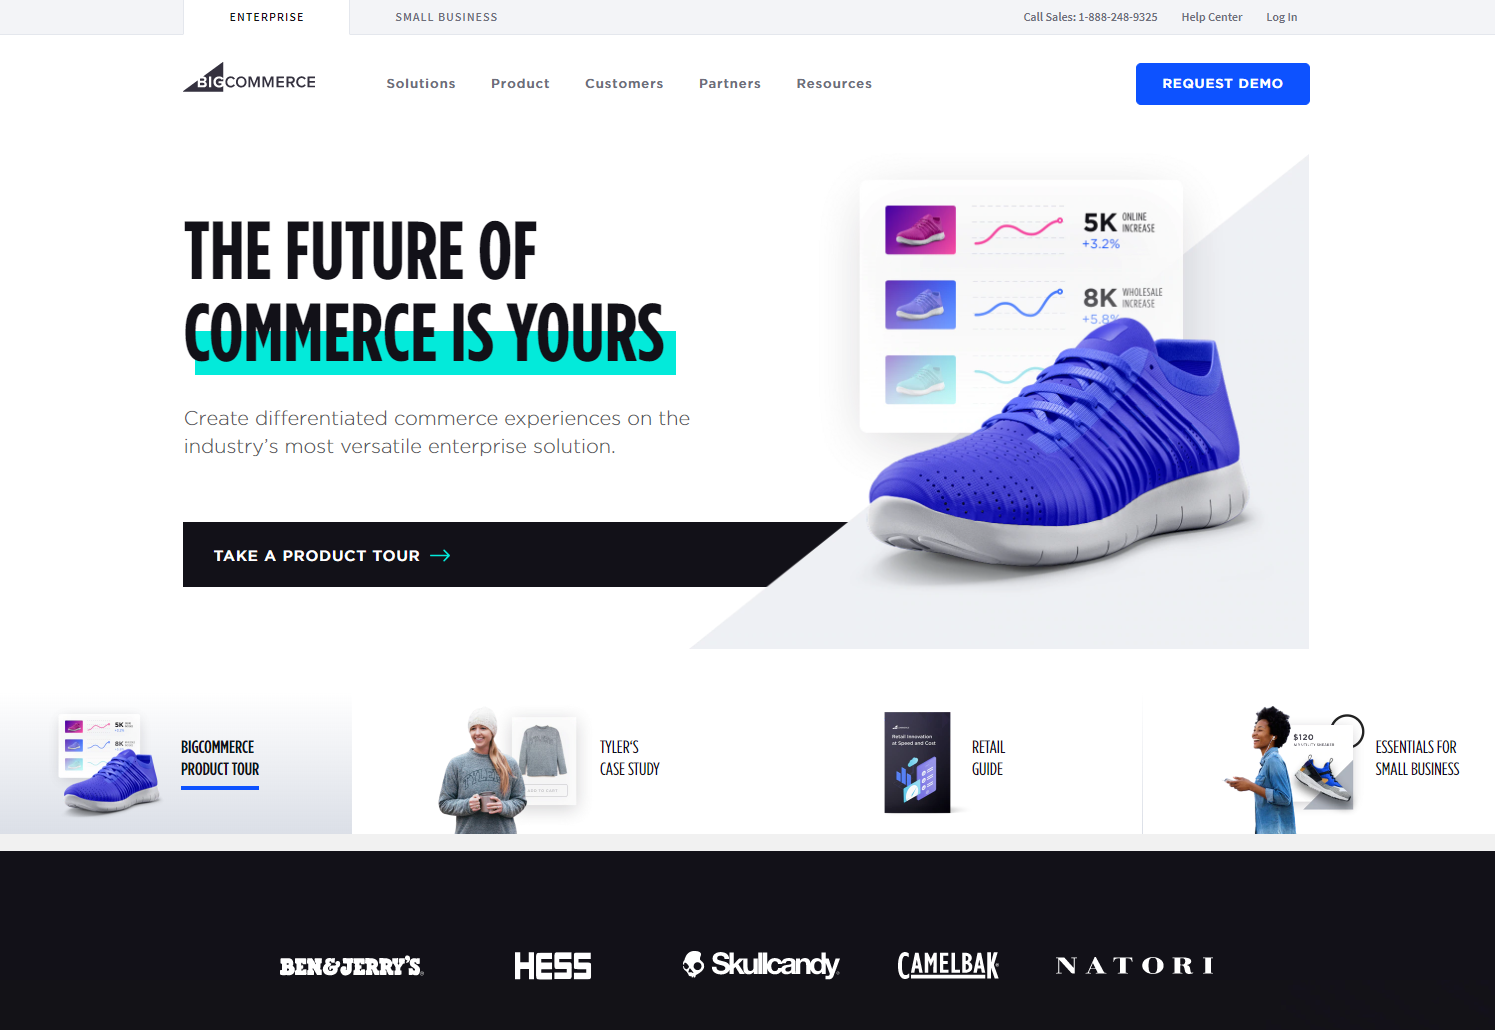 BigCommerce vs Shopify: Which one is better?